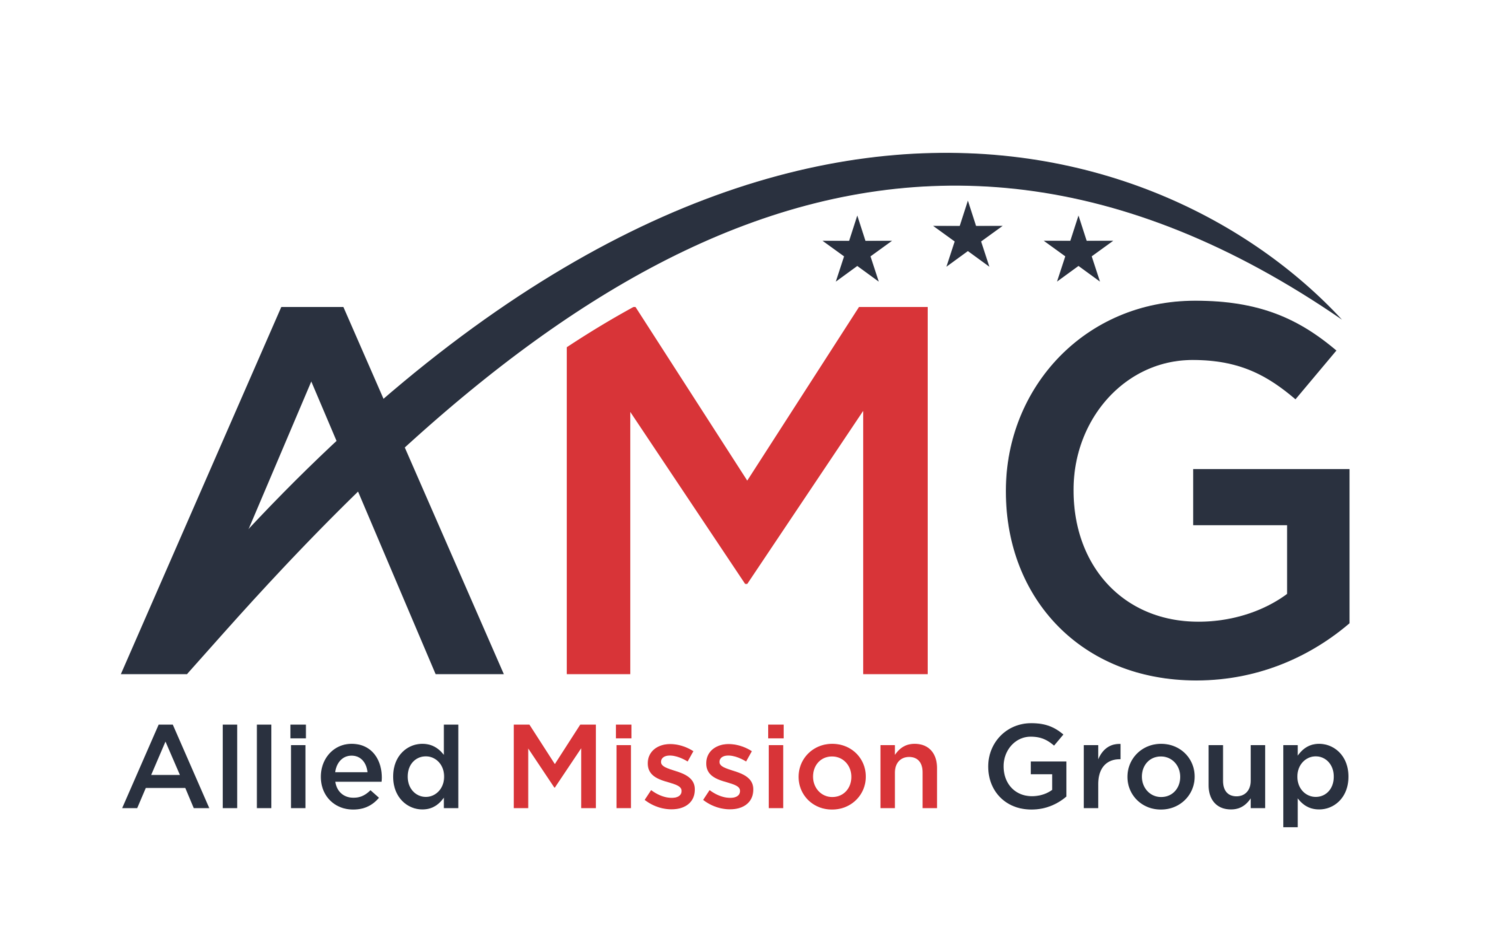 Allied Mission Group's Company logo